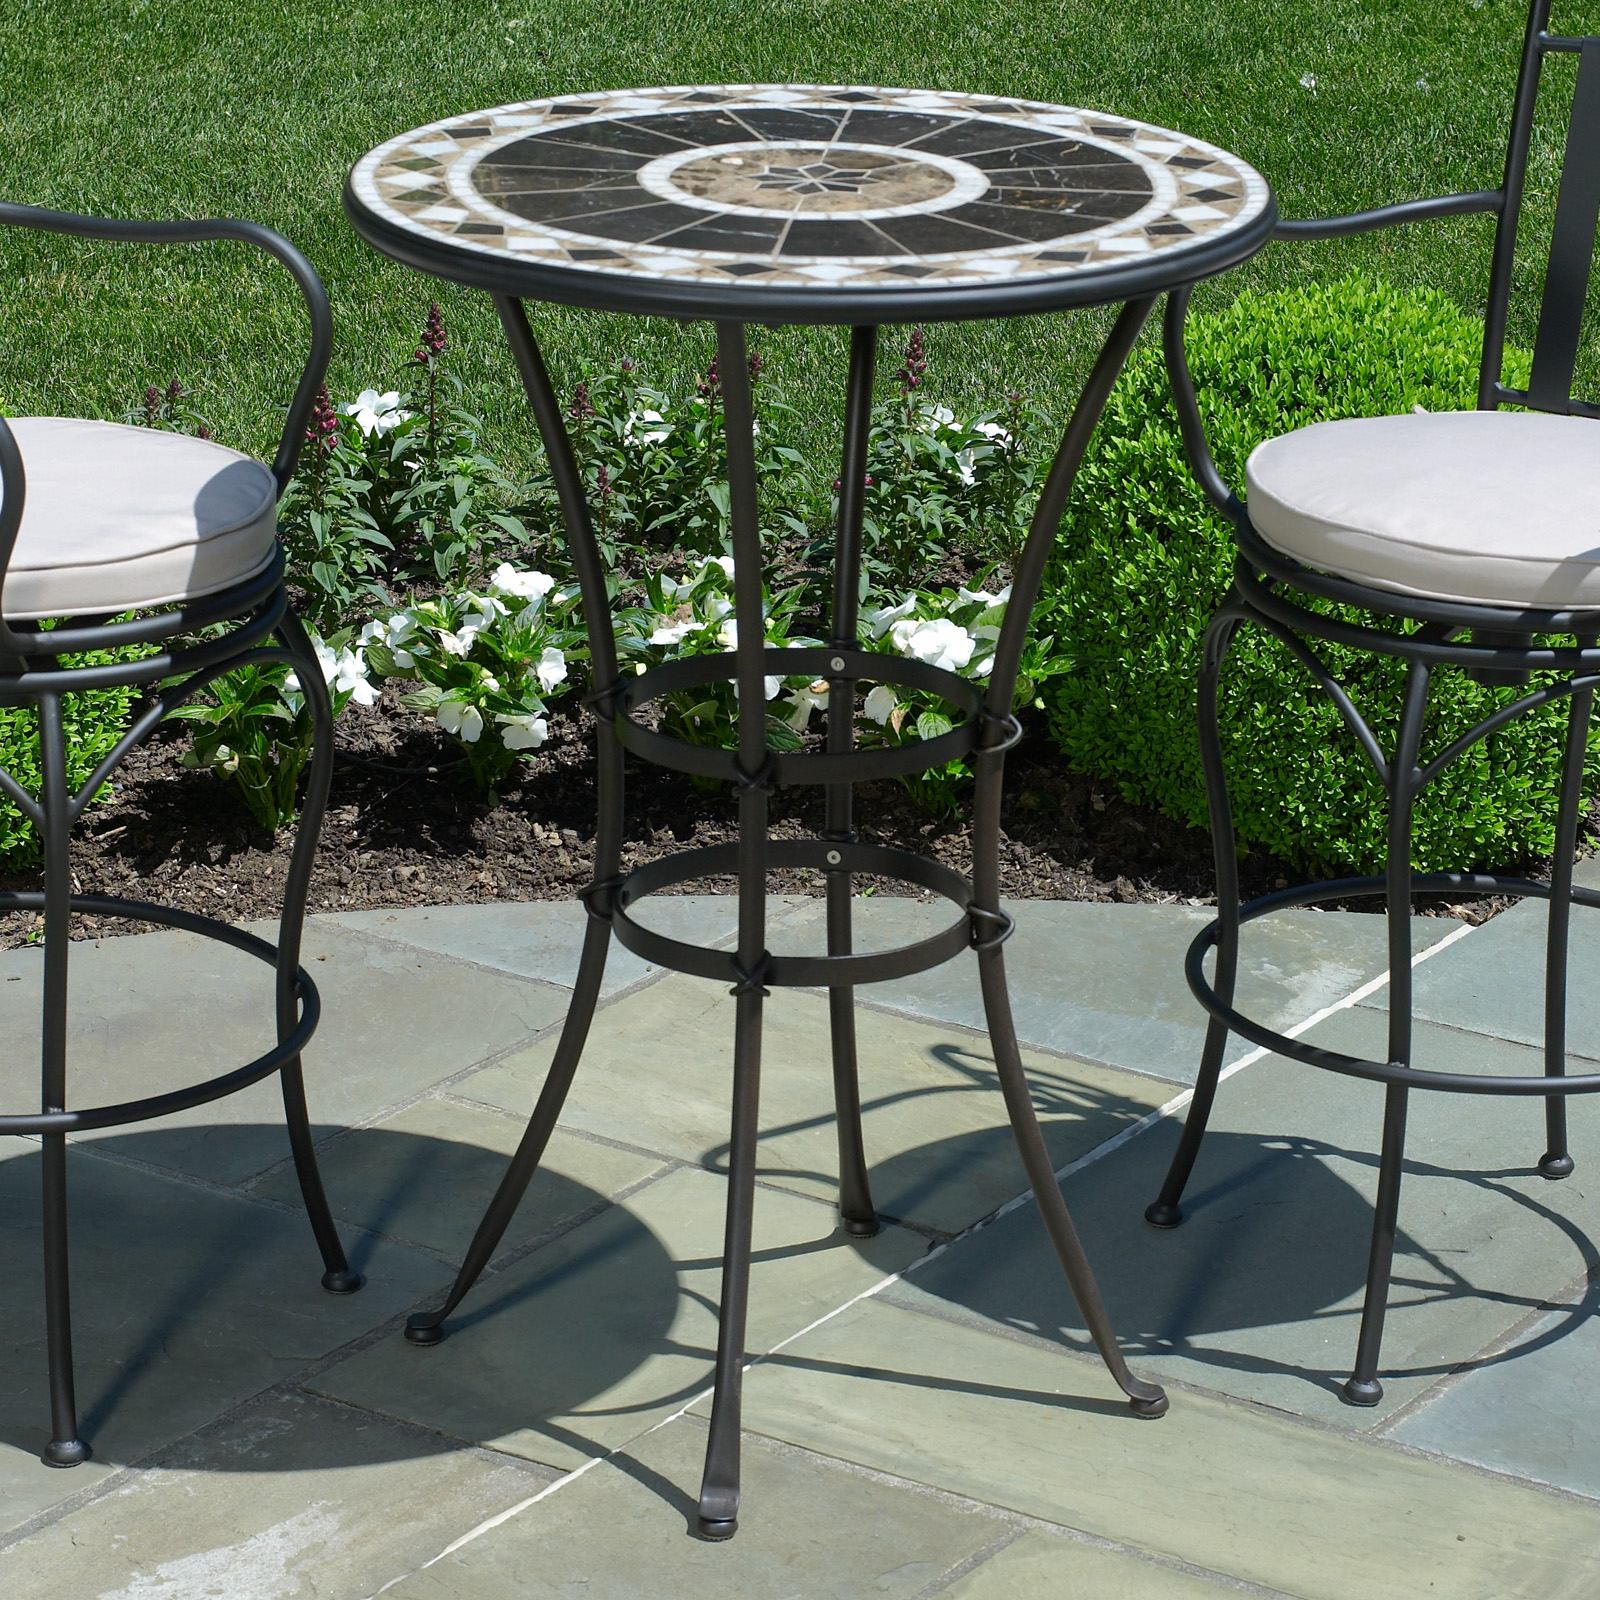 Outdoor Furniture amp Patio Sets Shop at Hayneedlecom : masterALH1253 from www.patiofurnitureusa.com size 1600 x 1600 jpeg 715kB